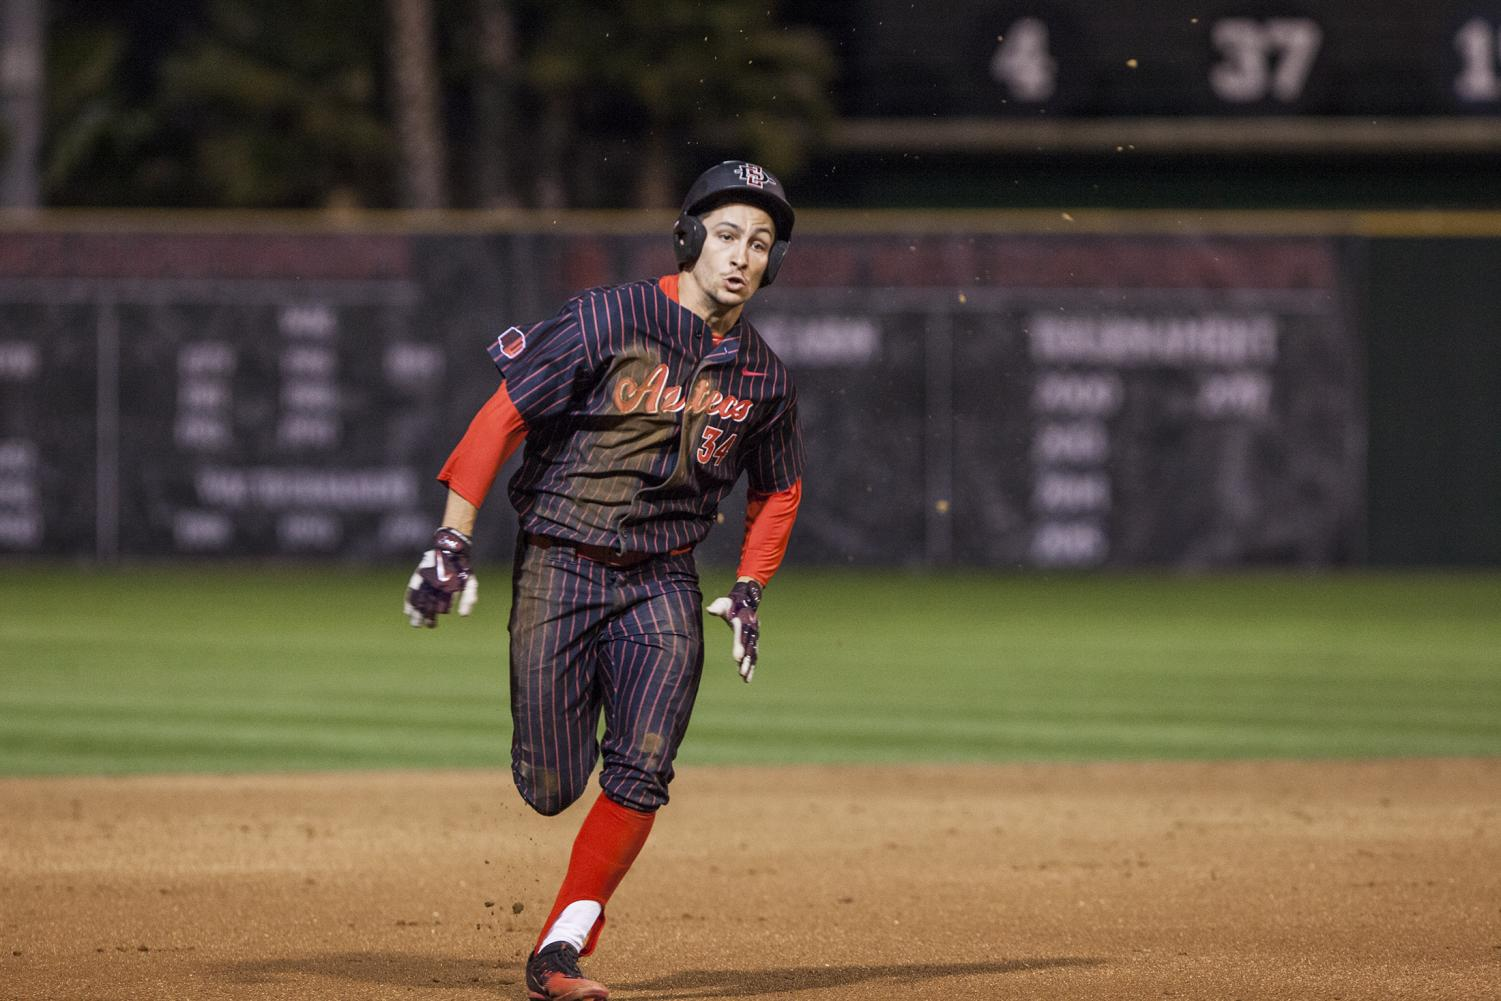 Senior outfielder Chase Calabuig runs the bases during the Aztecs 9-1 victory over UCSB on Feb. 16 at Tony Gwynn Stadium.